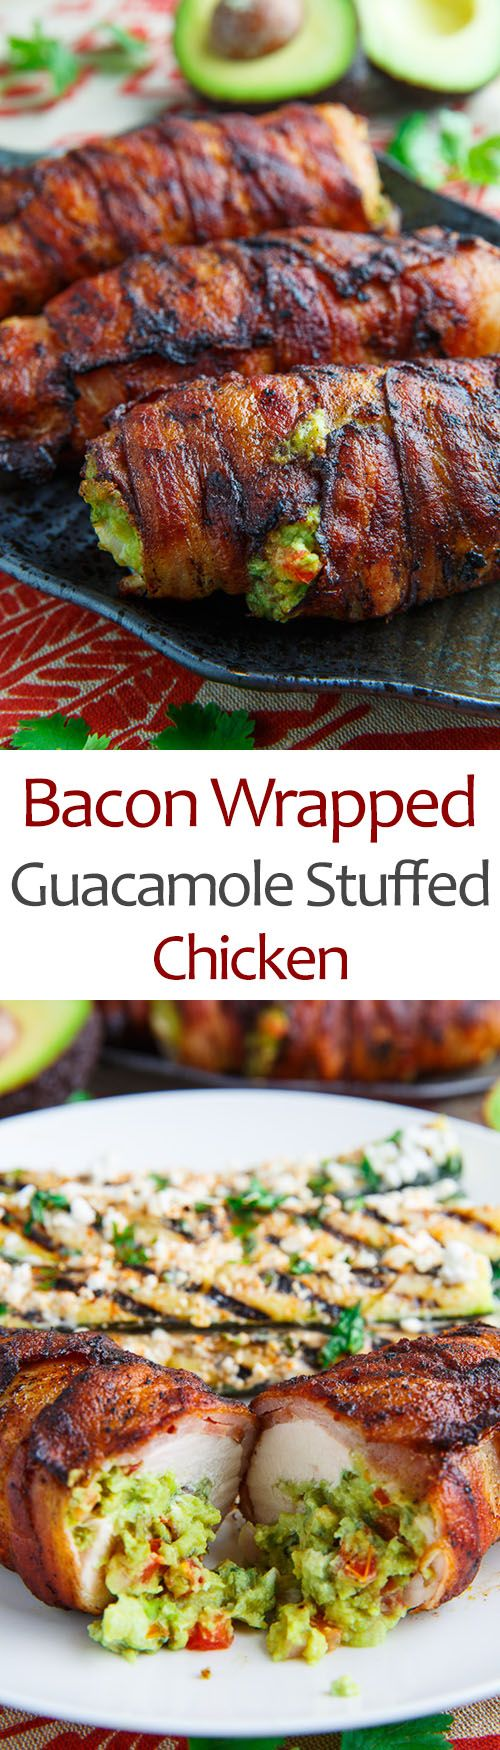 Just 3 ingredients, plus salt and pepper! Pound the 6-ounce chicken breasts, cut in half, spread with guac, and roll up each one in a slice of nitrate-free turkey bacon.